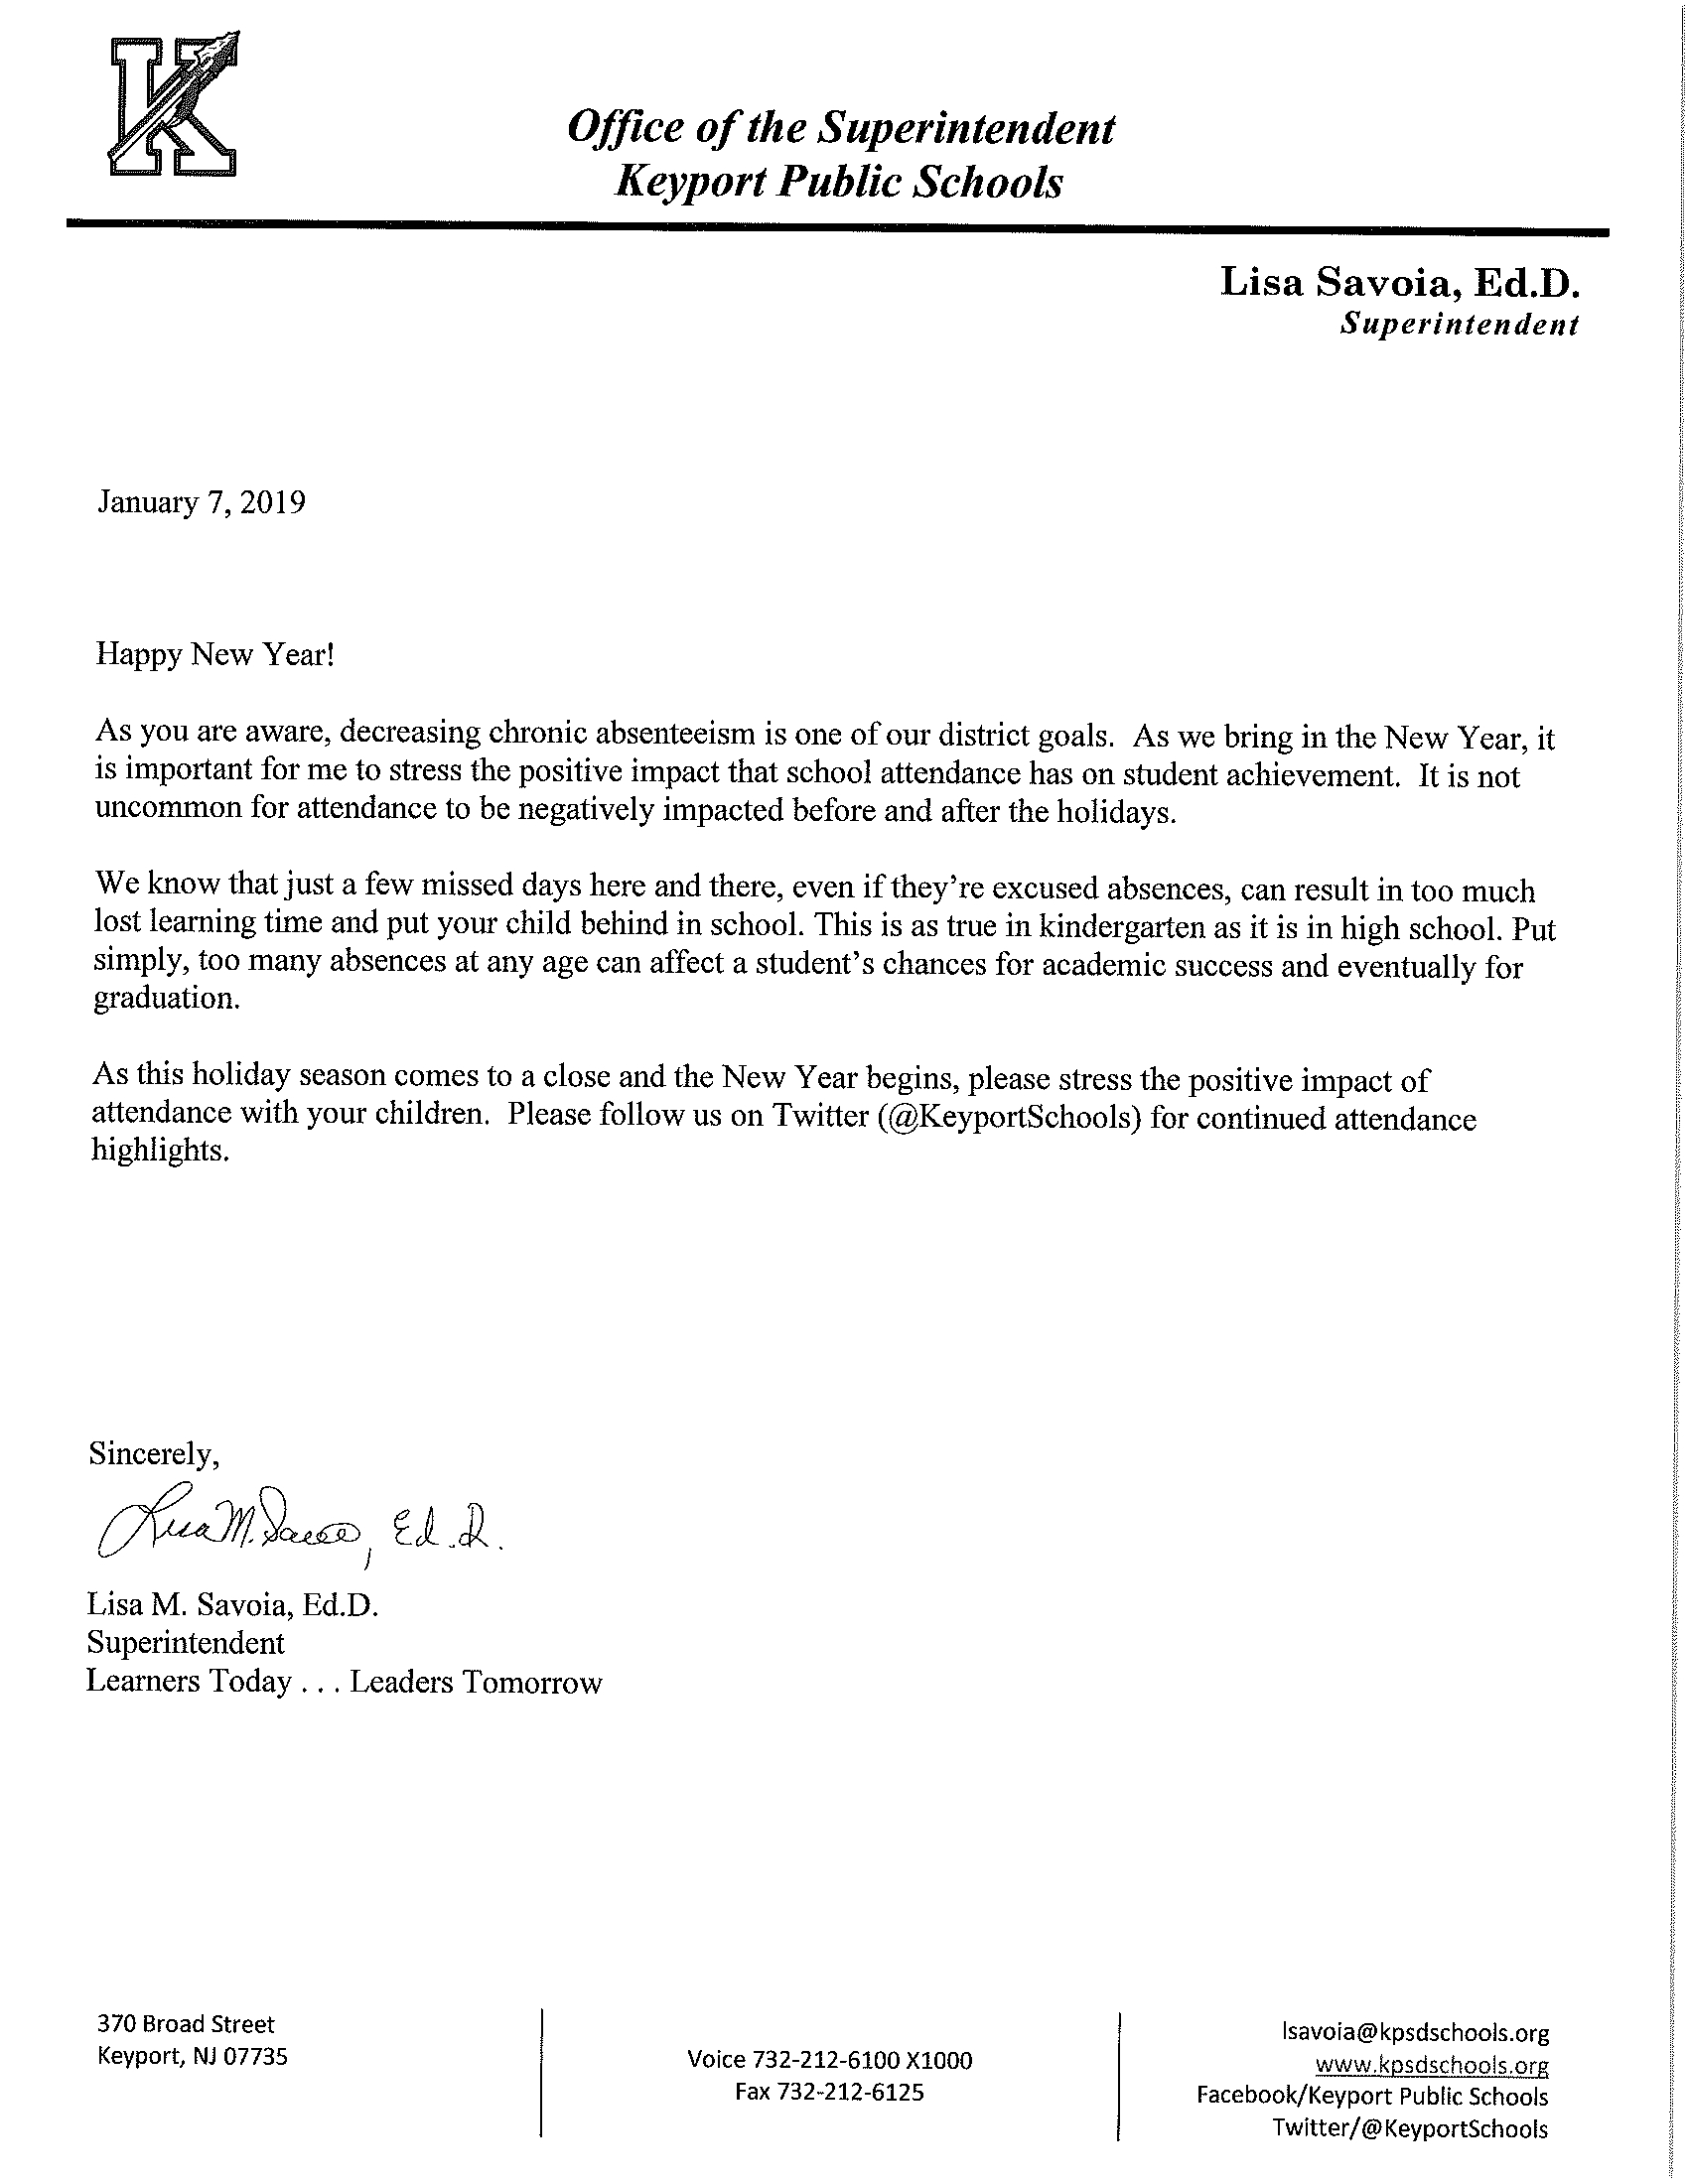 Attendance Letter from the Superintendent